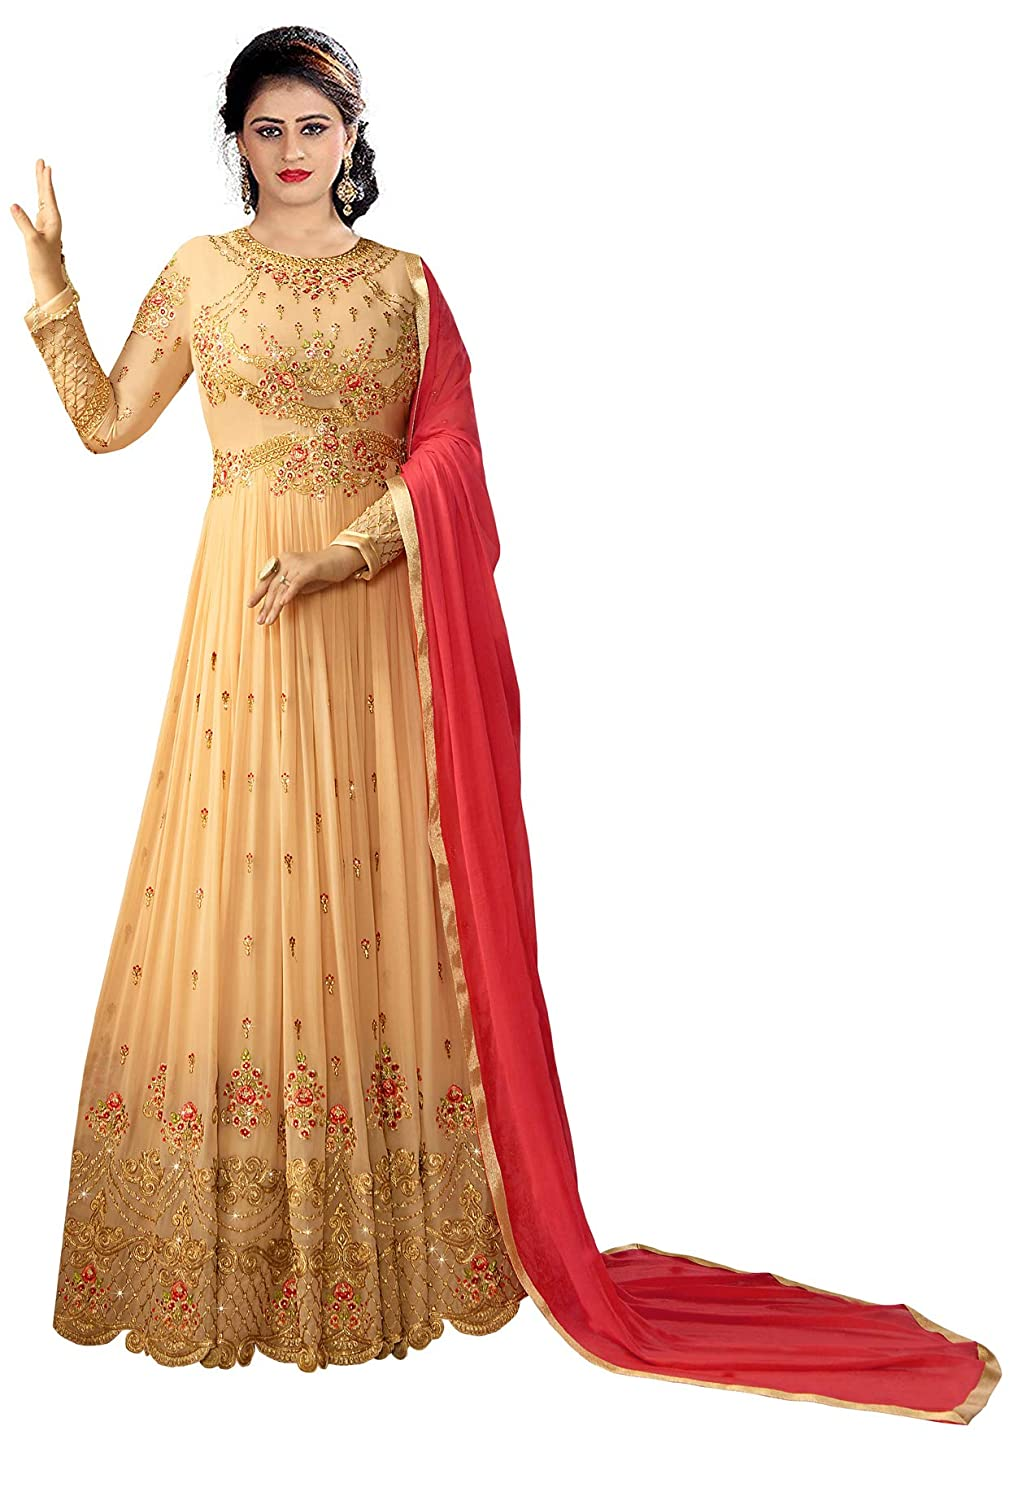 e26d5428688 Ethnic Yard Womens Faux Georgette Anarkali Embroidered Semi Stitched  Salwarsuit  Amazon.in  Clothing   Accessories